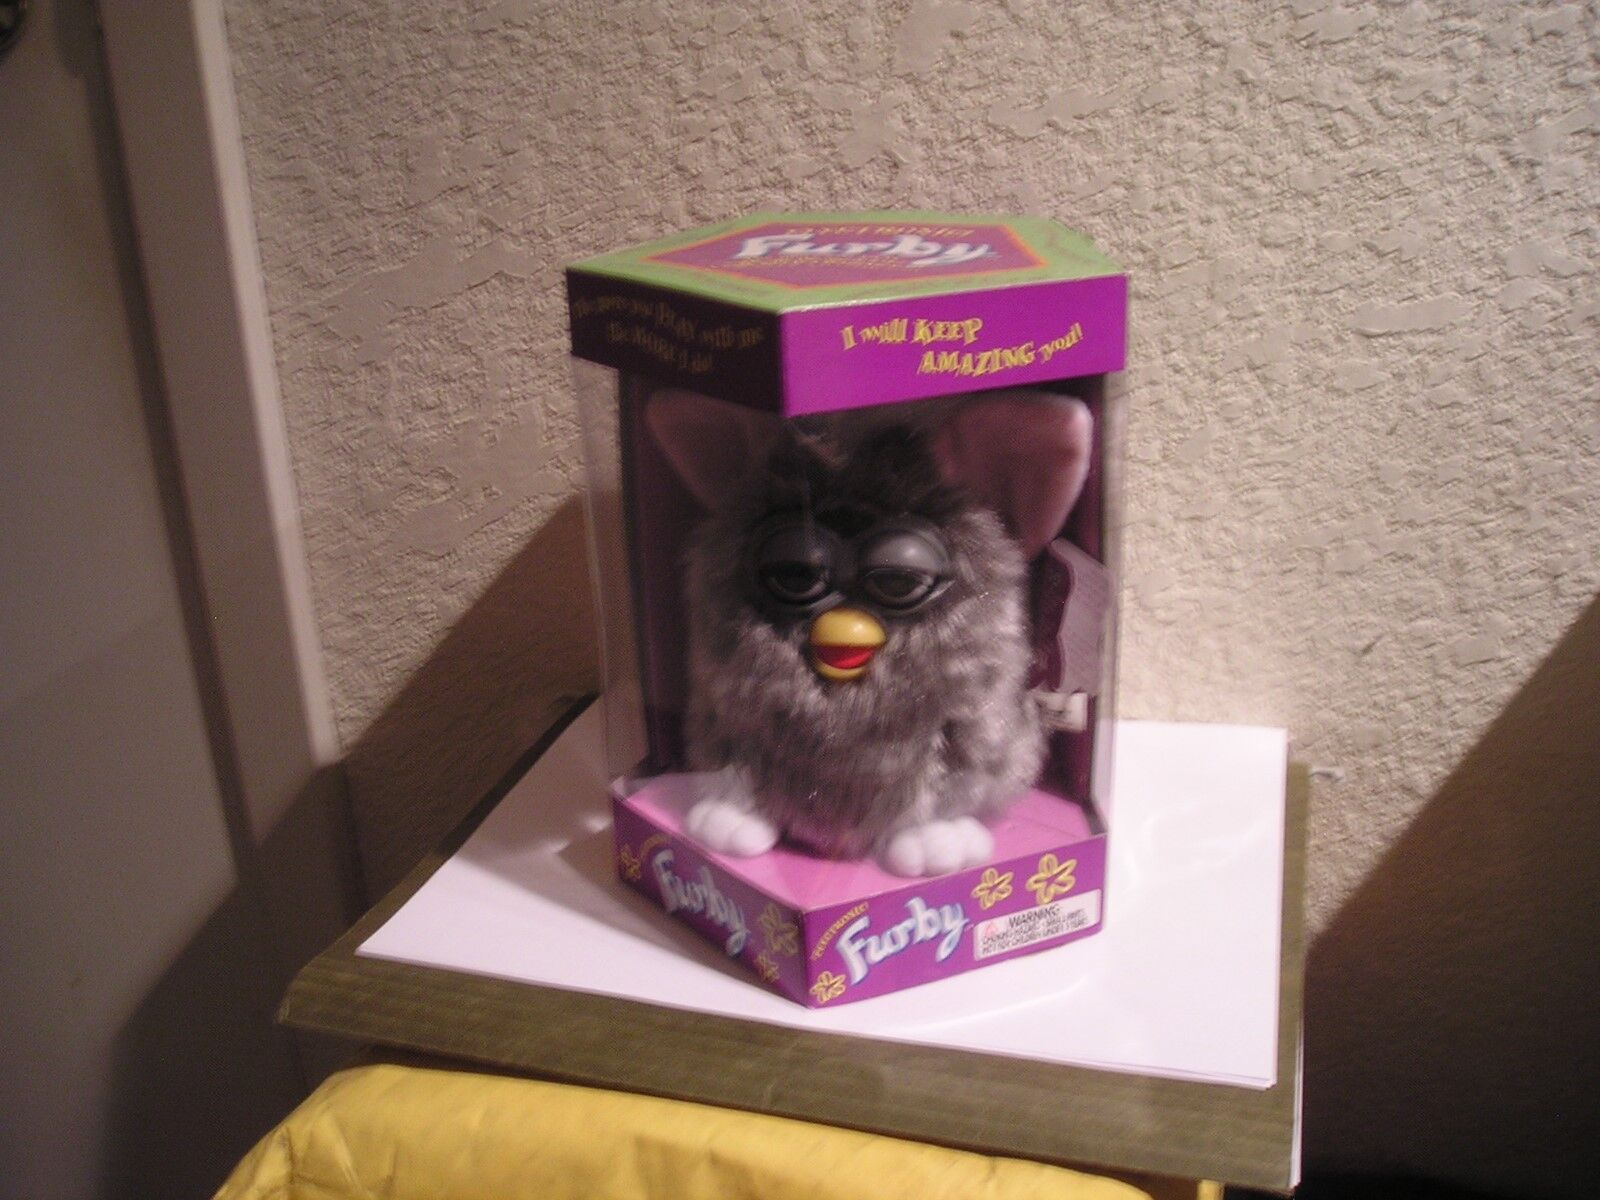 ORIGINAL FURBY 1998 MODEL 70-800, WOLF,  GREY WITH STRIPES